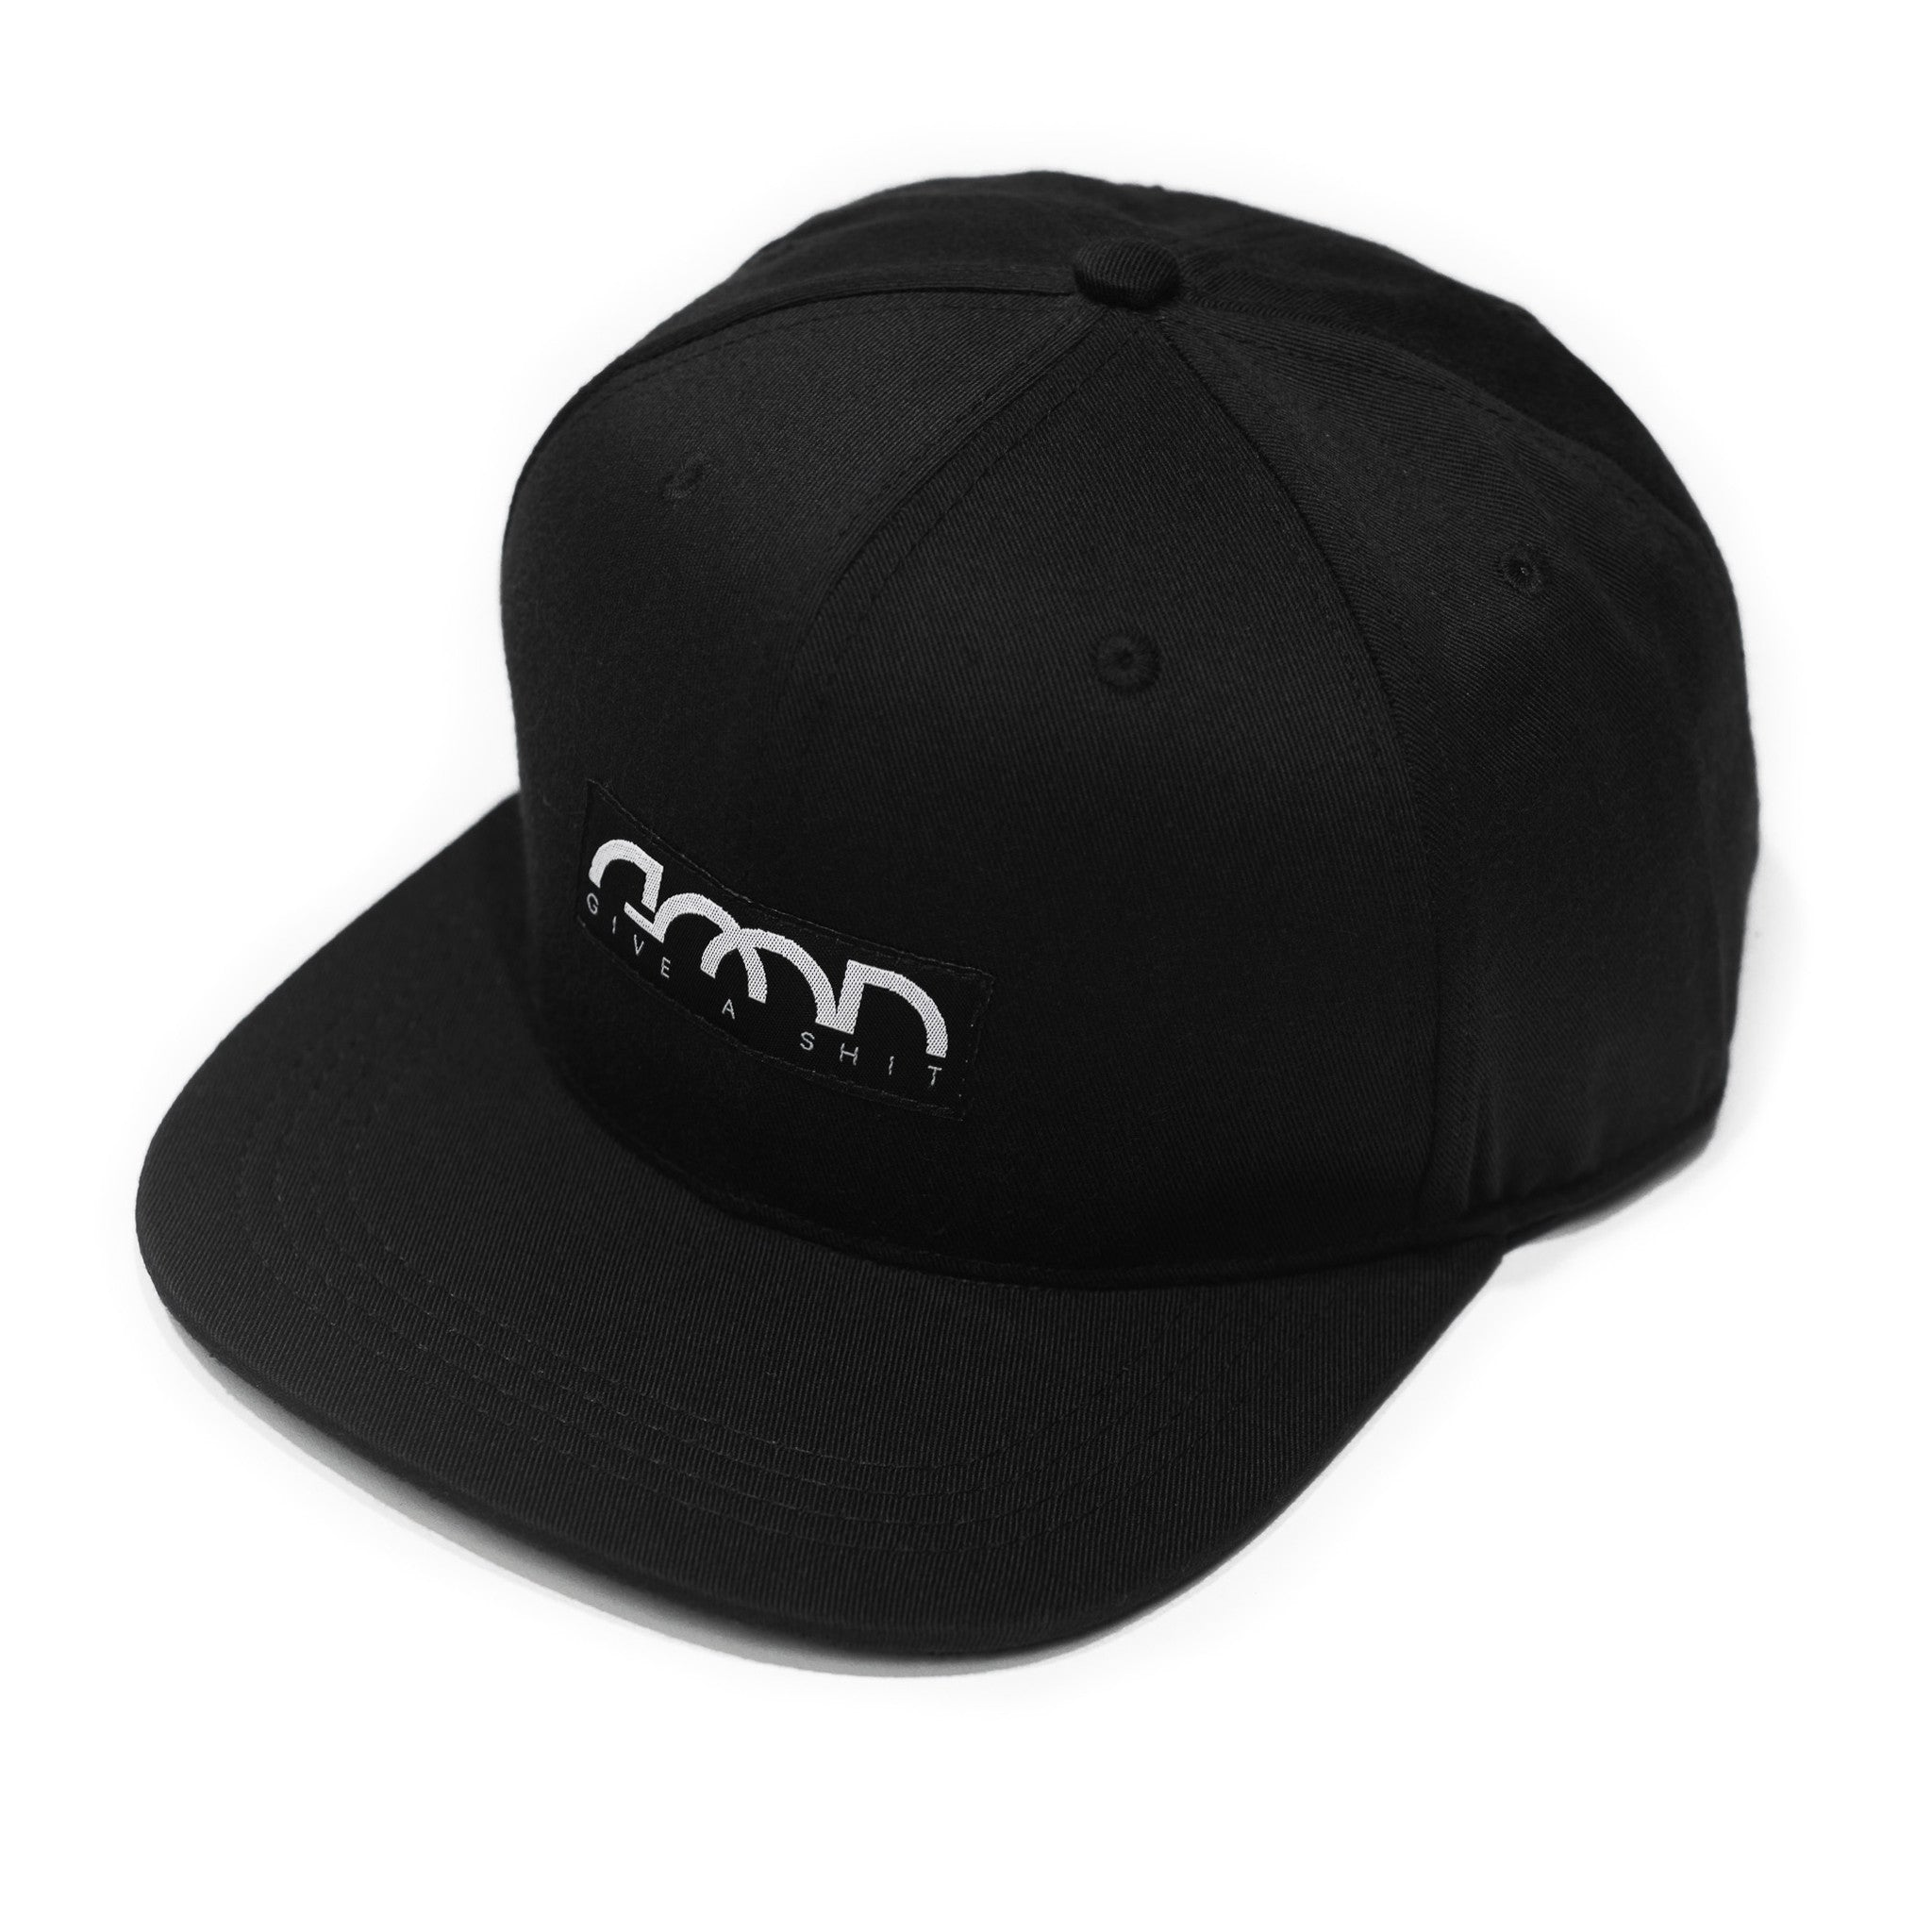 GIVE A SHIT SNAPBACK CAP BLK